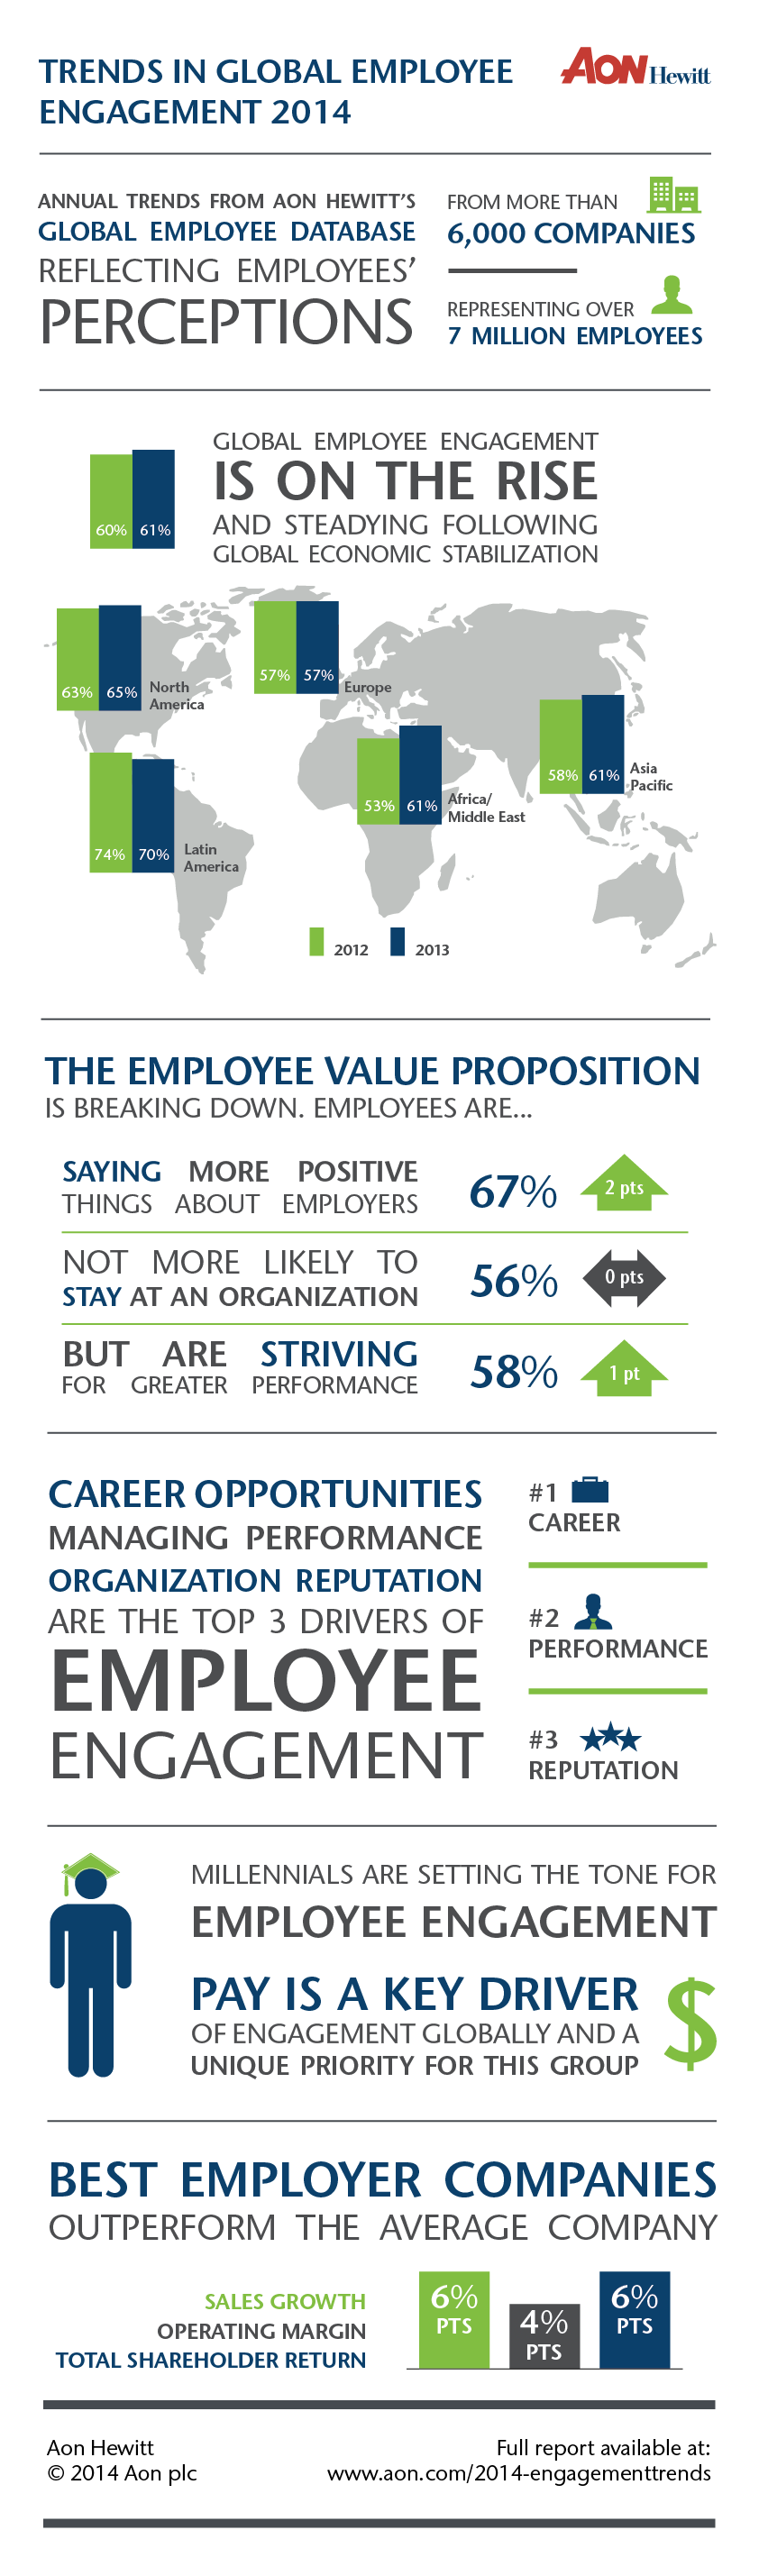 Trends in Global Employee Engagement 2014 by Aon Hewitt